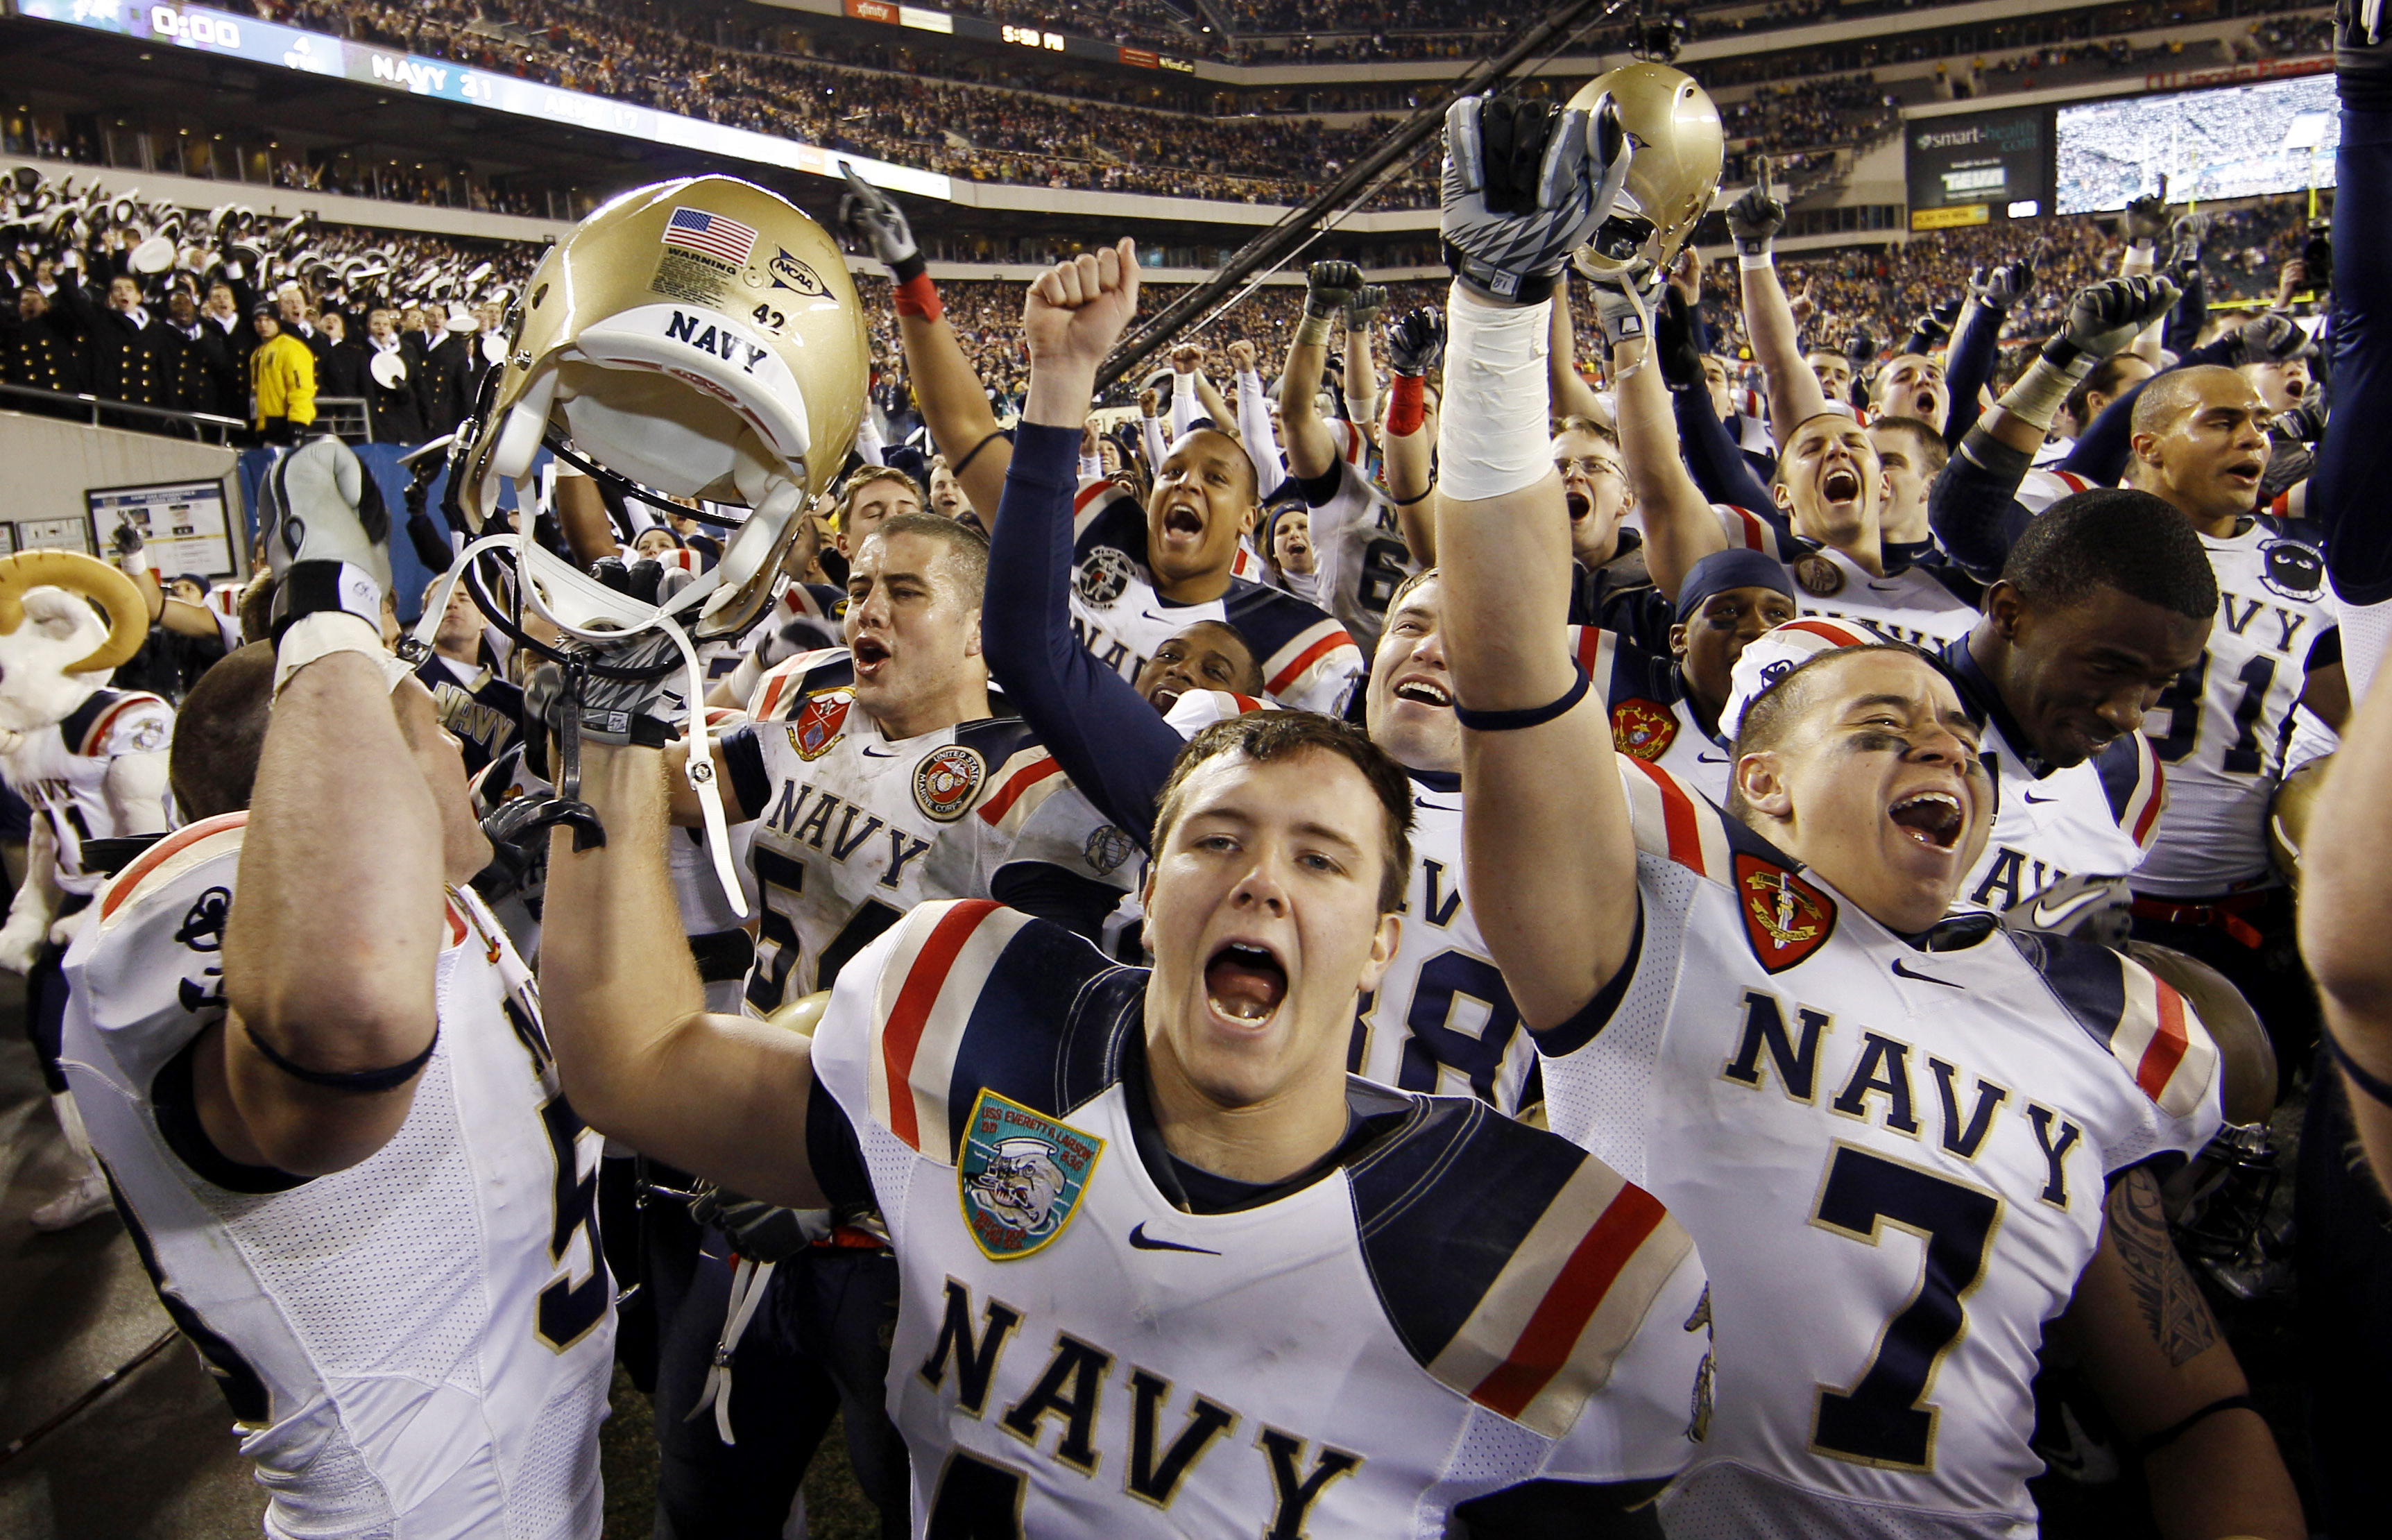 Navy's Mason Graham, center, celebrates with teammates after an NCAA college football game against Army, Saturday, Dec. 11, 2010, in Philadelphia. Navy won 31-17. (AP Photo/Matt Slocum)